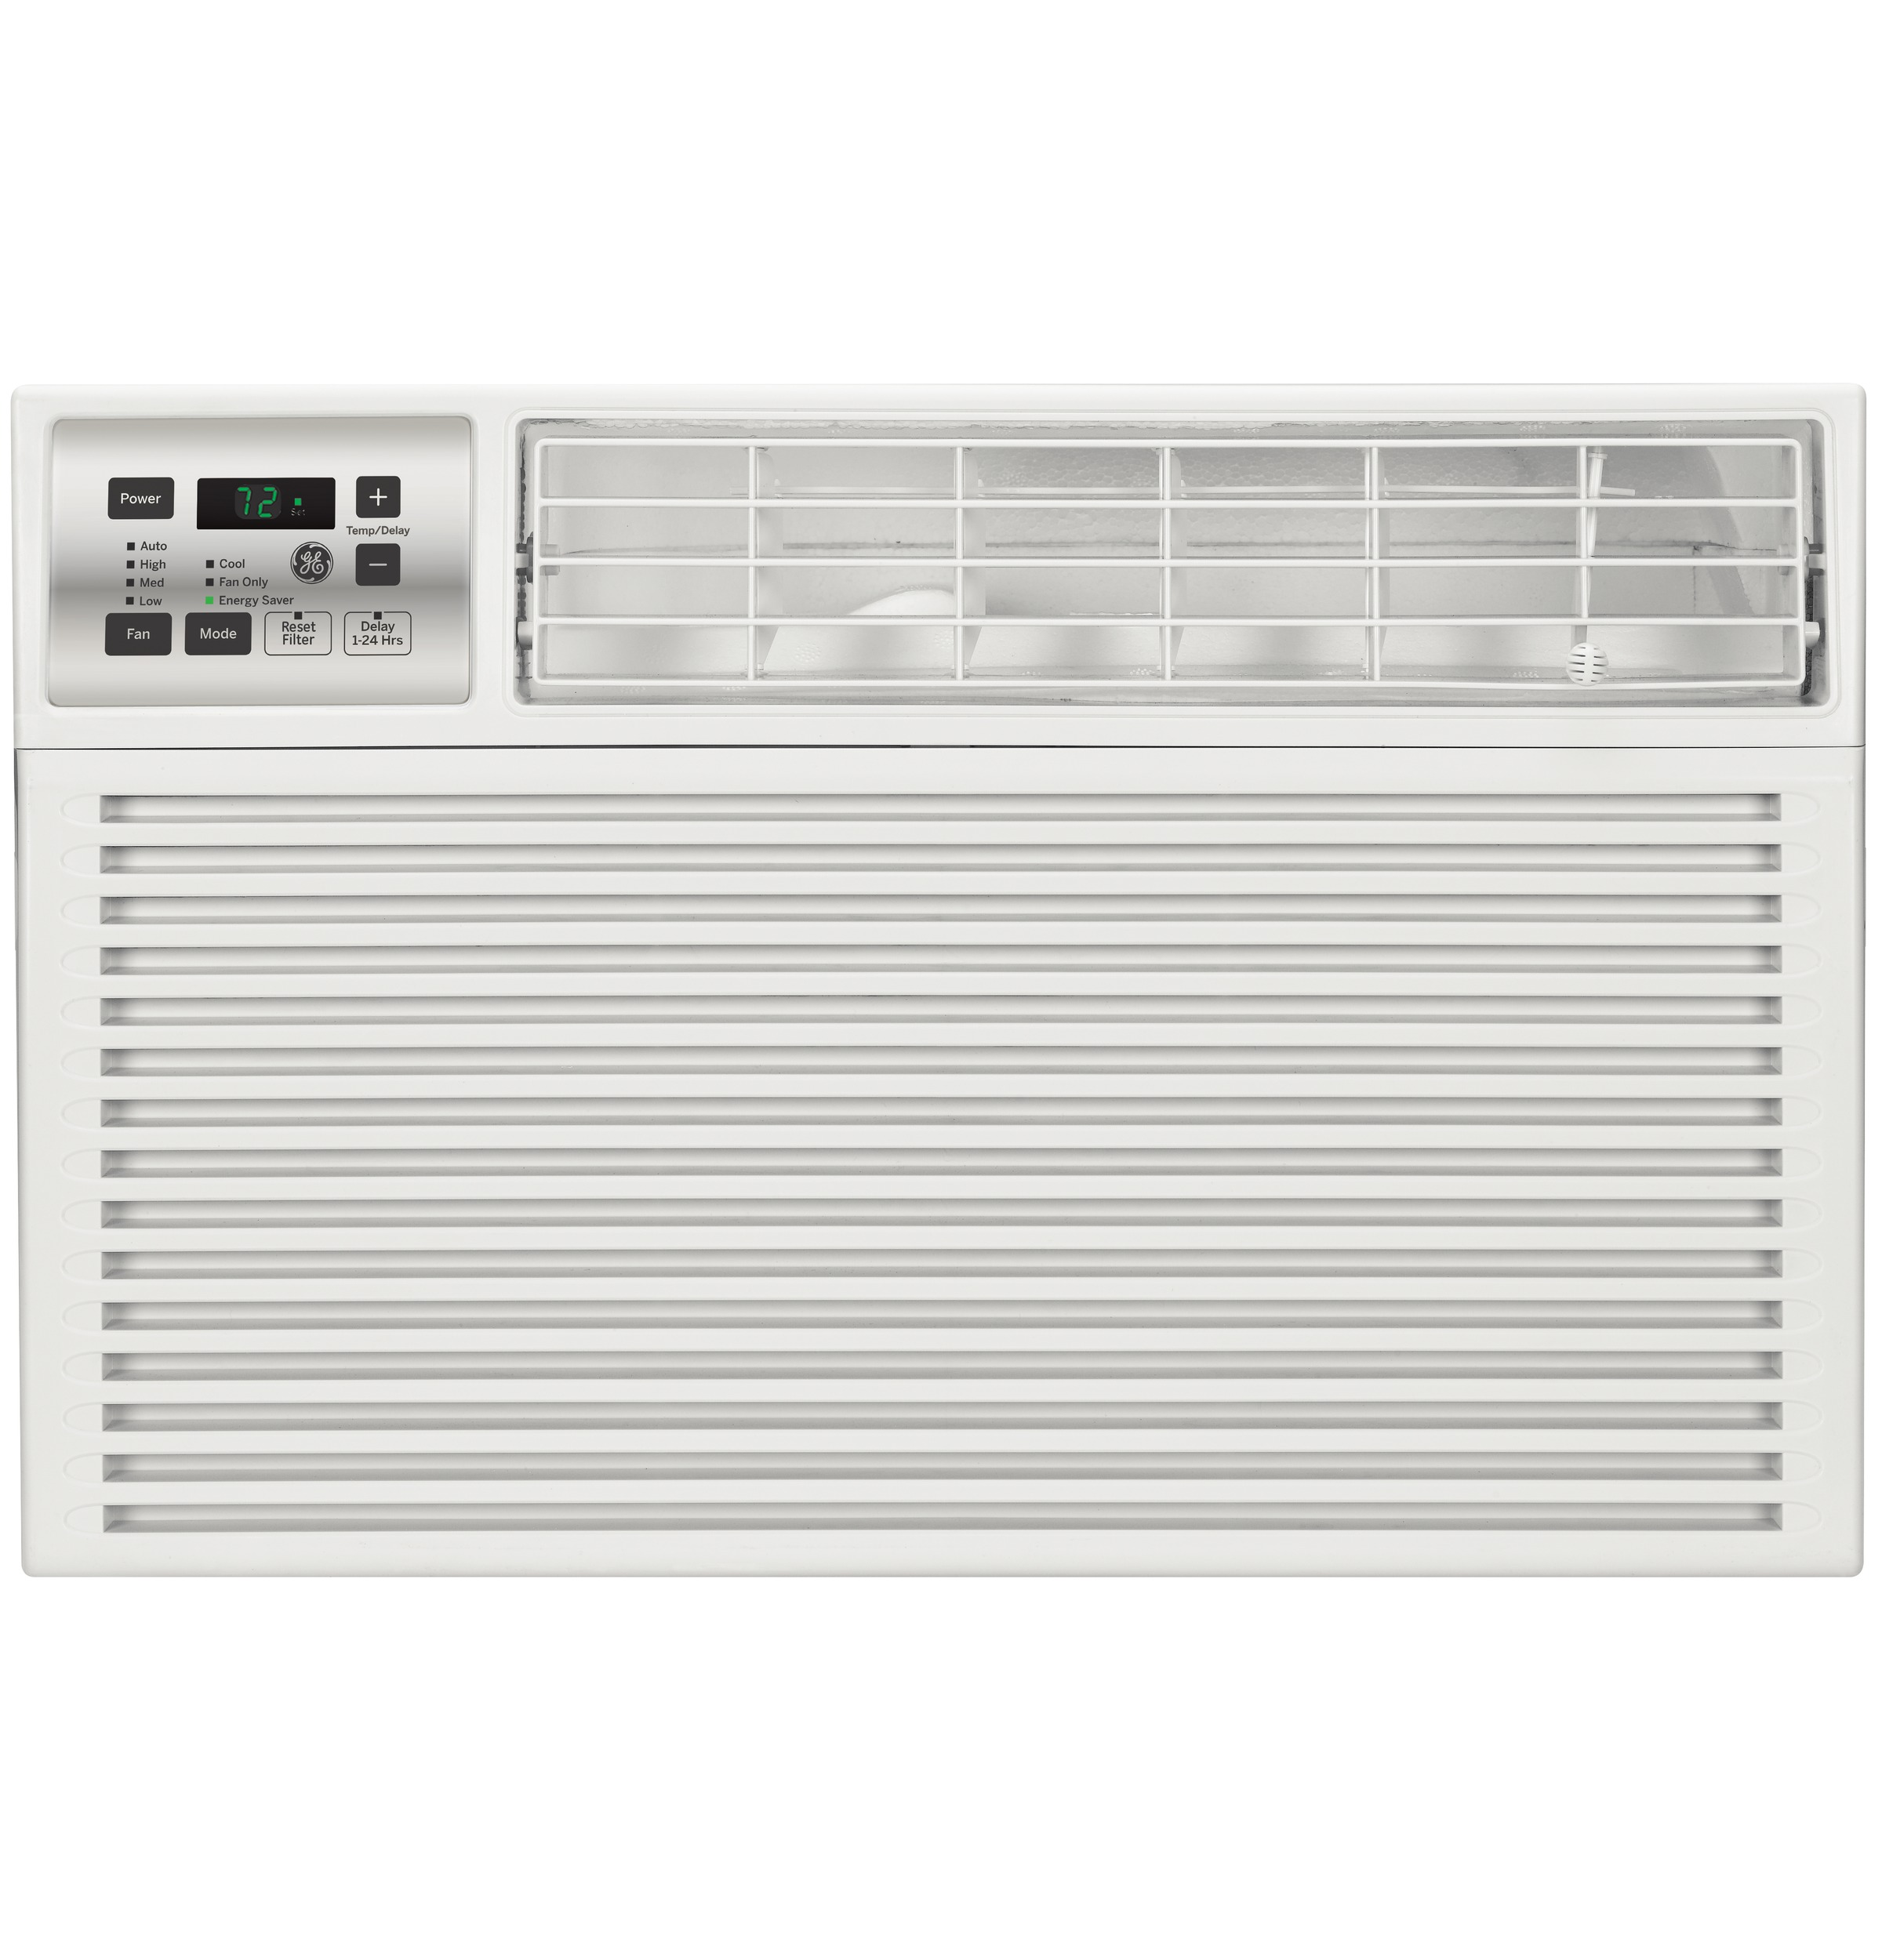 GE 6,000 BTU AIR CONDITIONER WITH REMOTE, AEW06LX